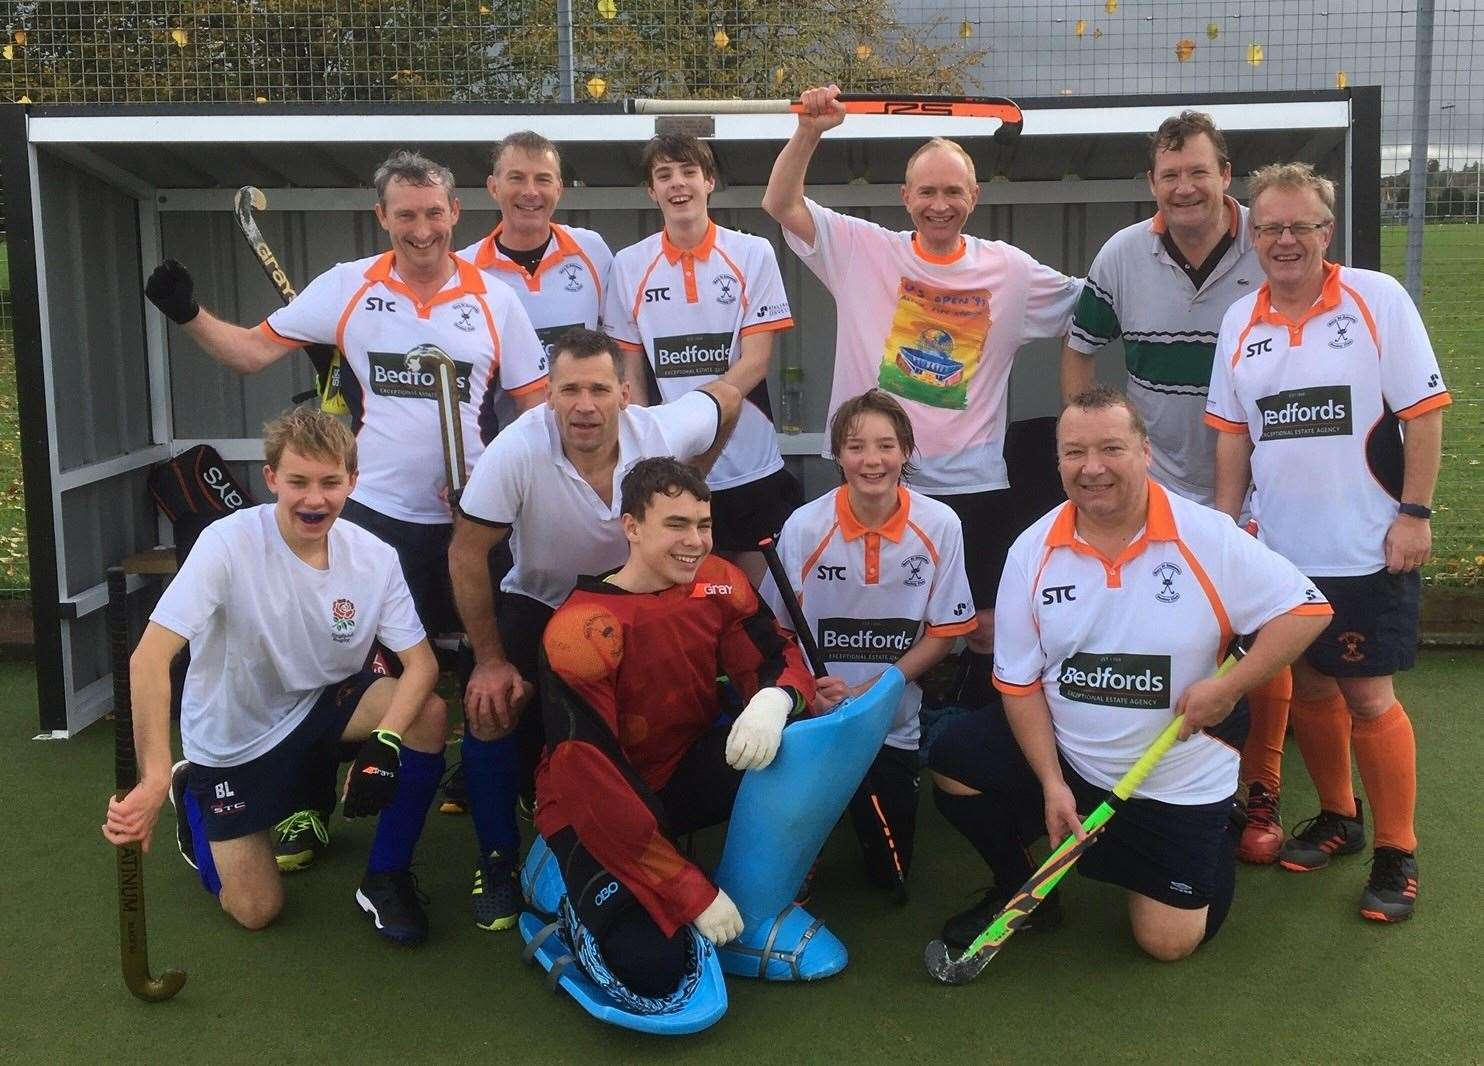 Bury St Edmunds Hockey Club's Men's VIIs who got their first victory in the East League at the 45th attempt on Saturday (20826739)